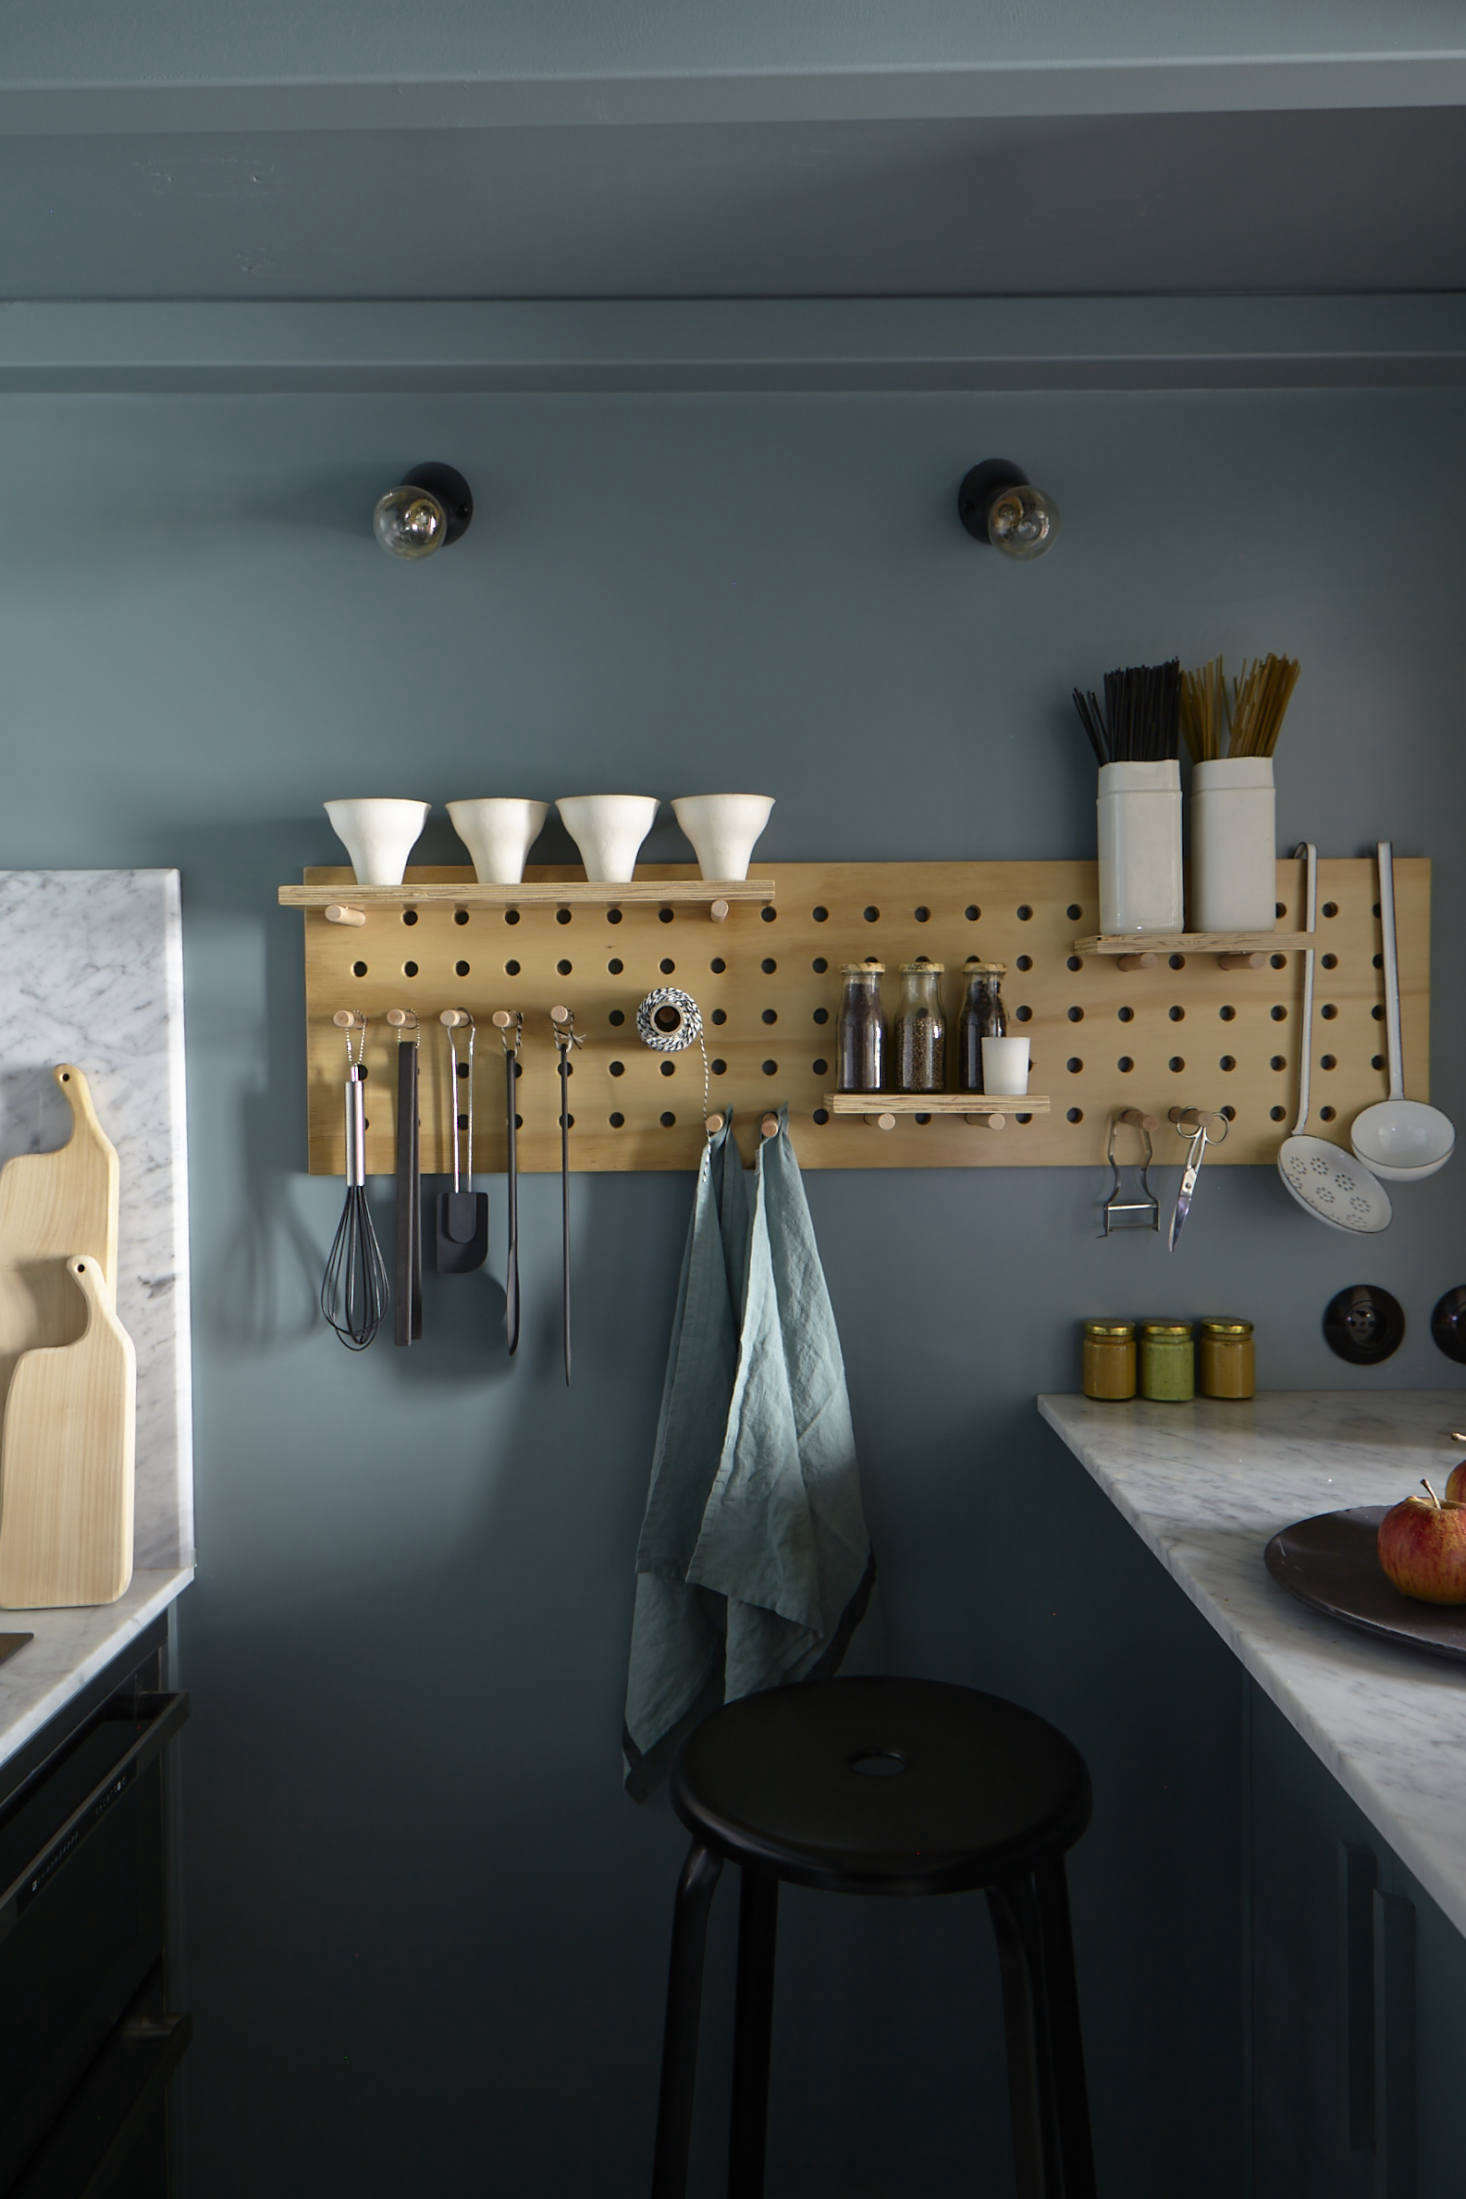 A pegboard makes use of the small space and keeps tools, towels, and twine within easy reach. The flush-mount light bulbs are from Zangra.